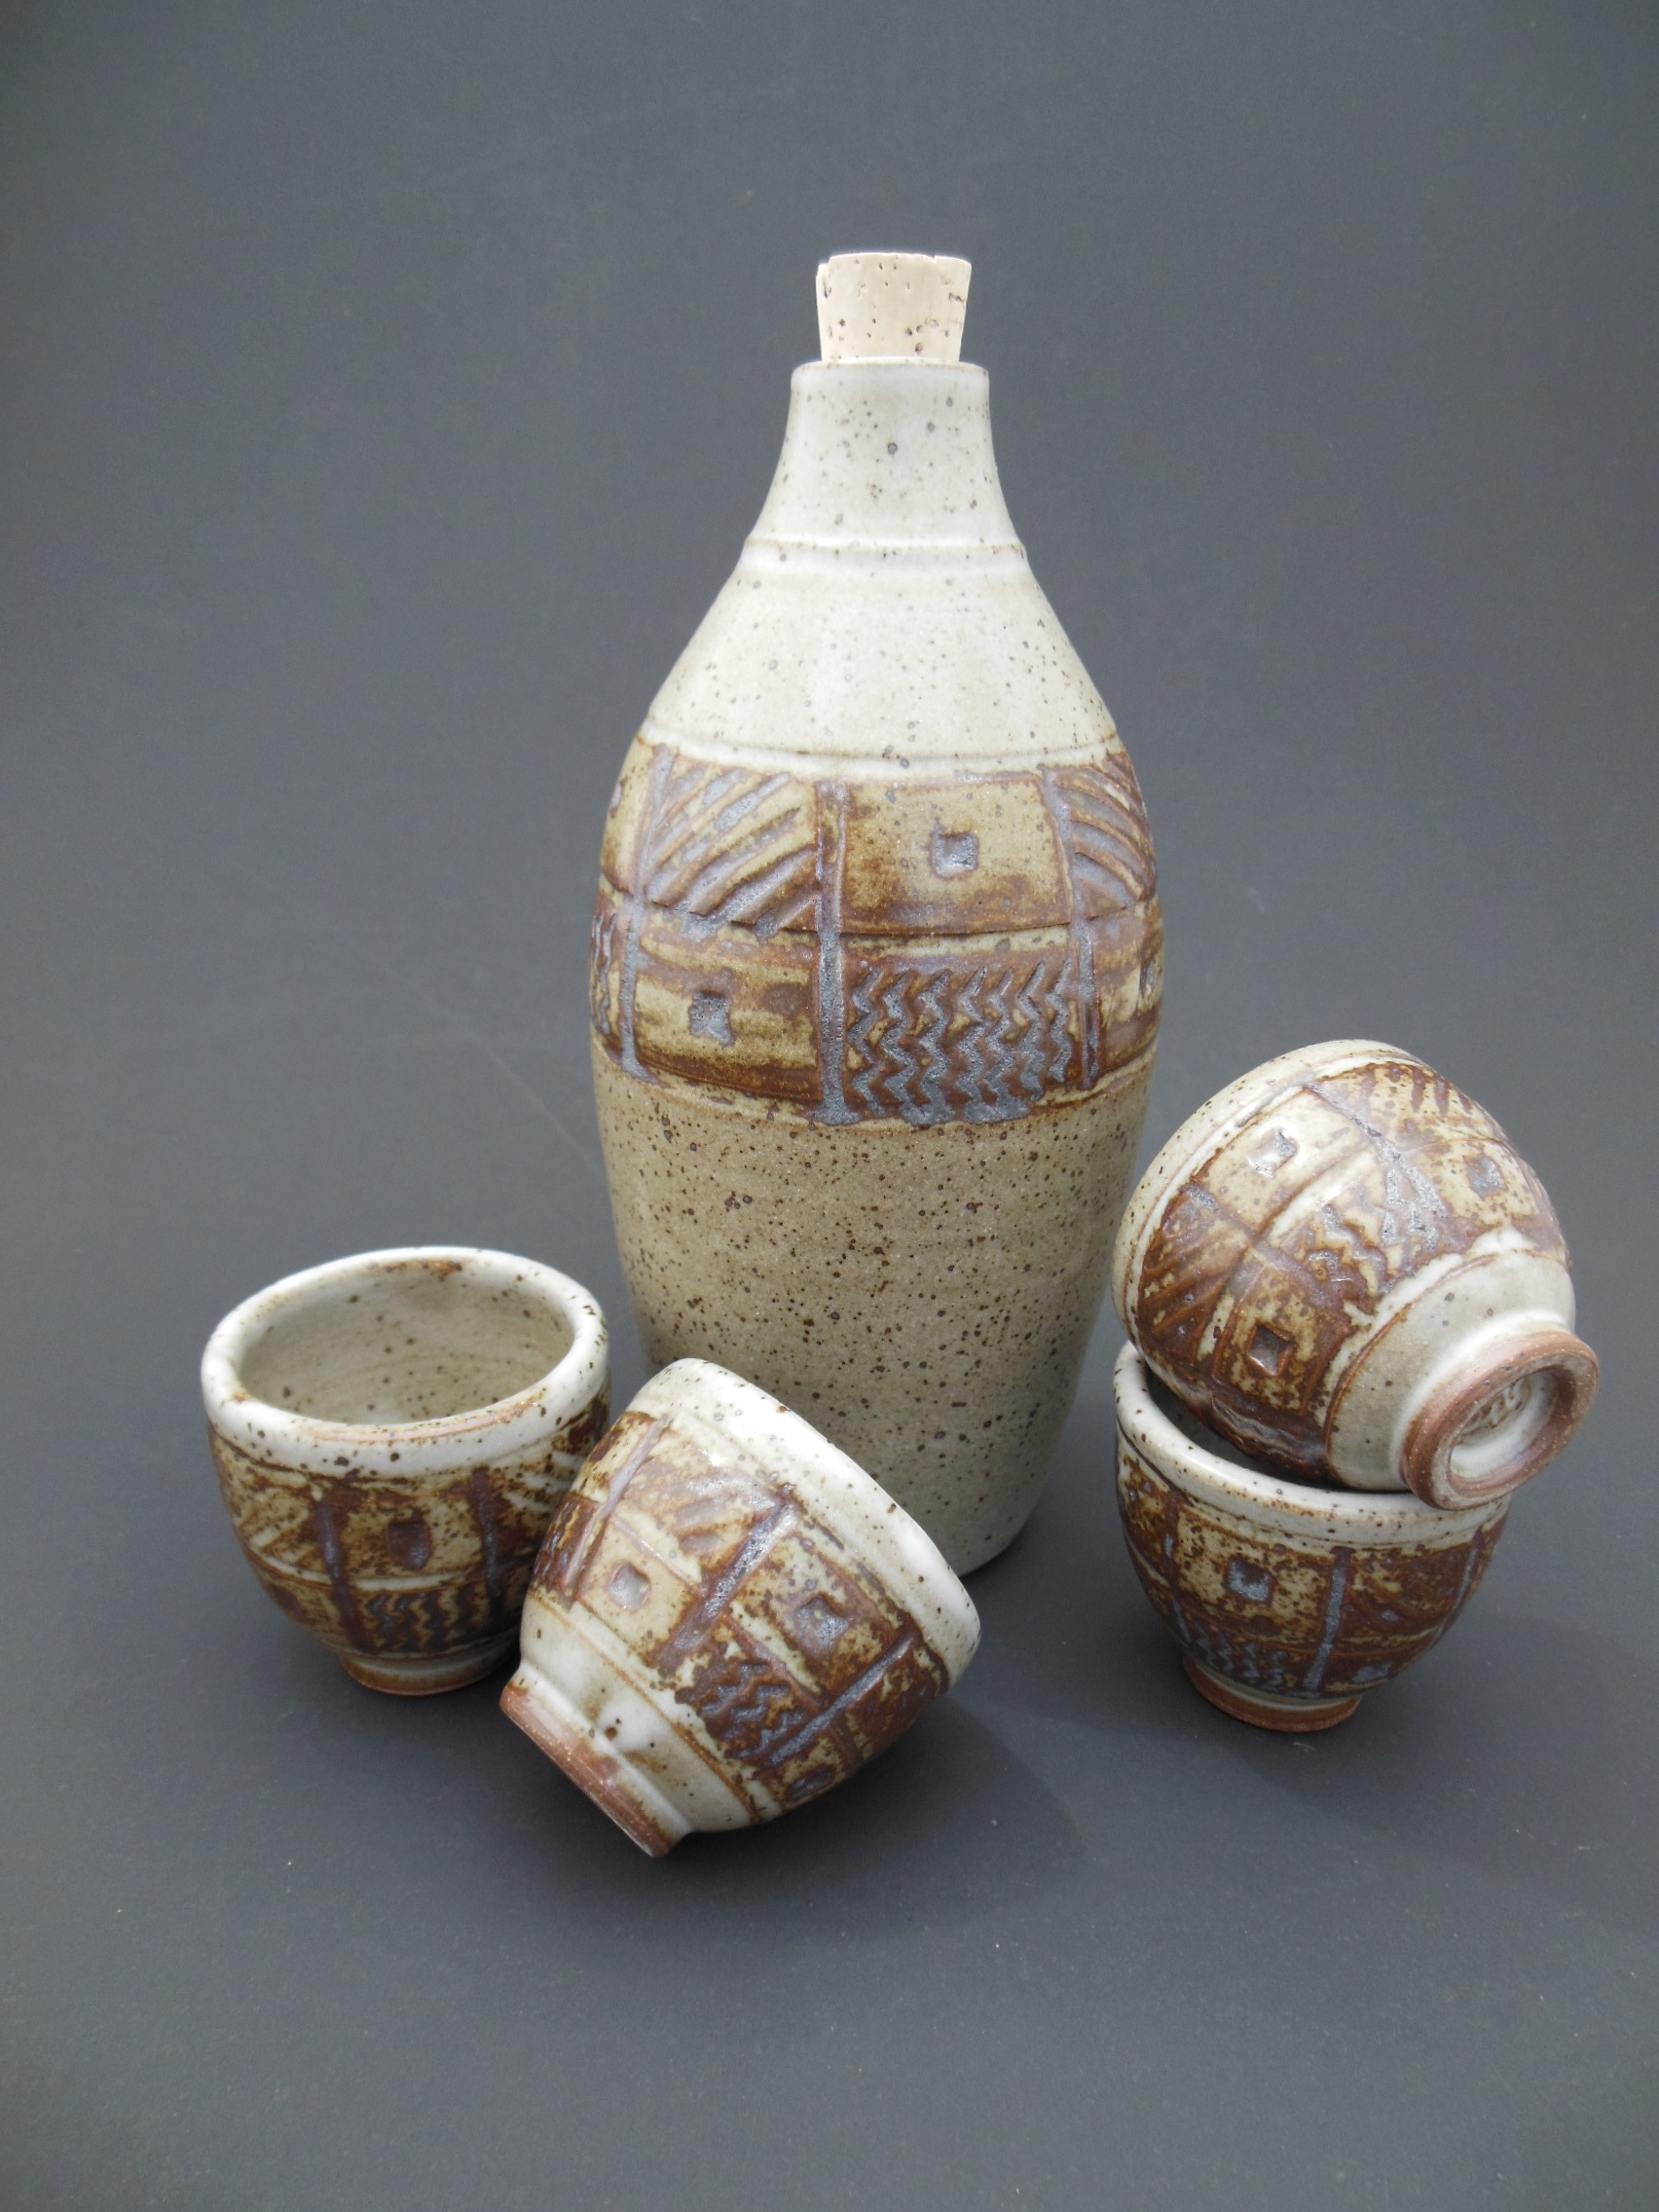 1st Place Winner ~ 3rd Annual Texas Sake Company's Pottery Competition 2013